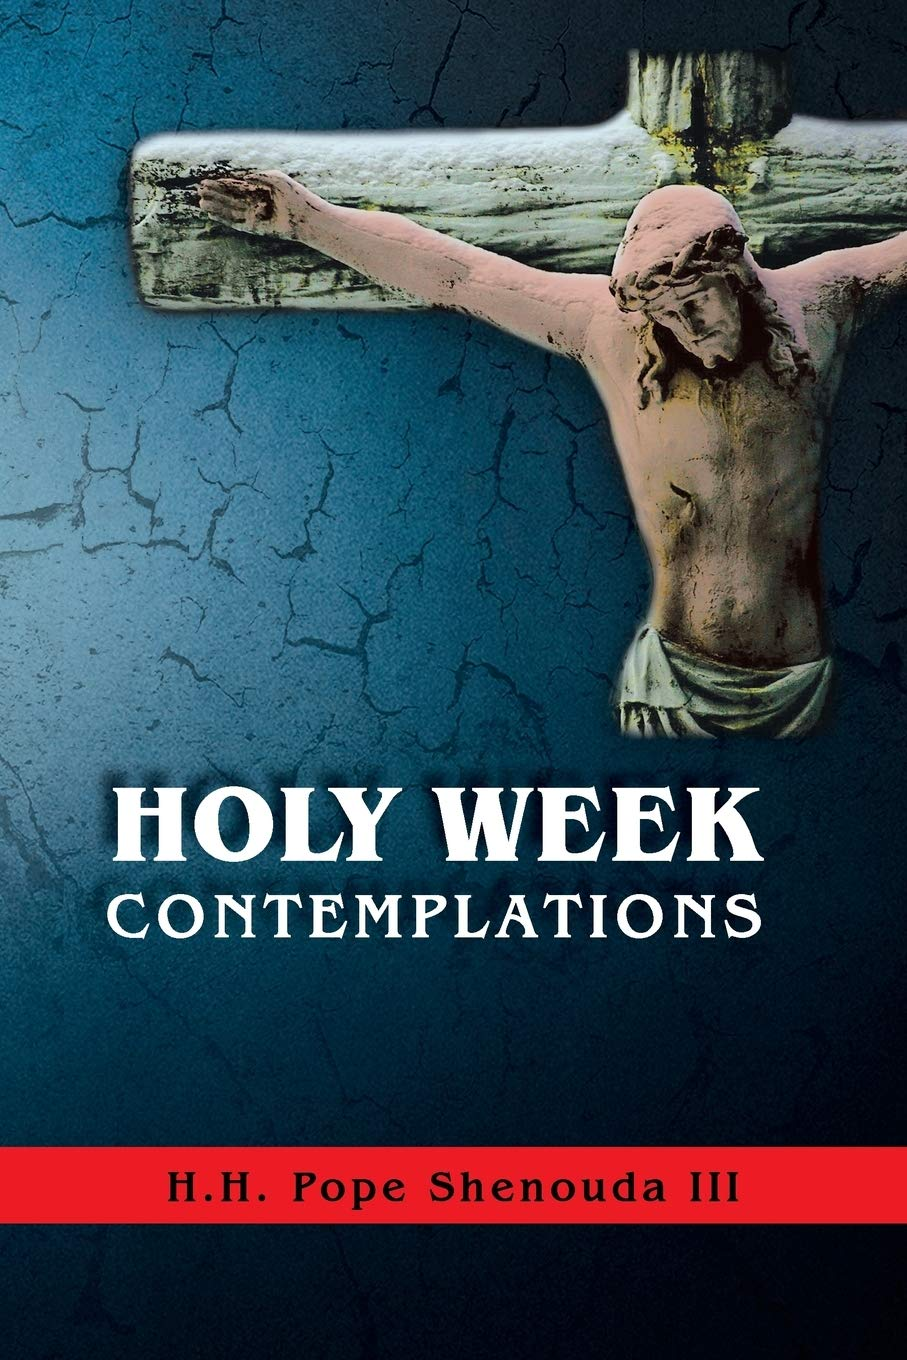 holy-week-contemplations-book-cover